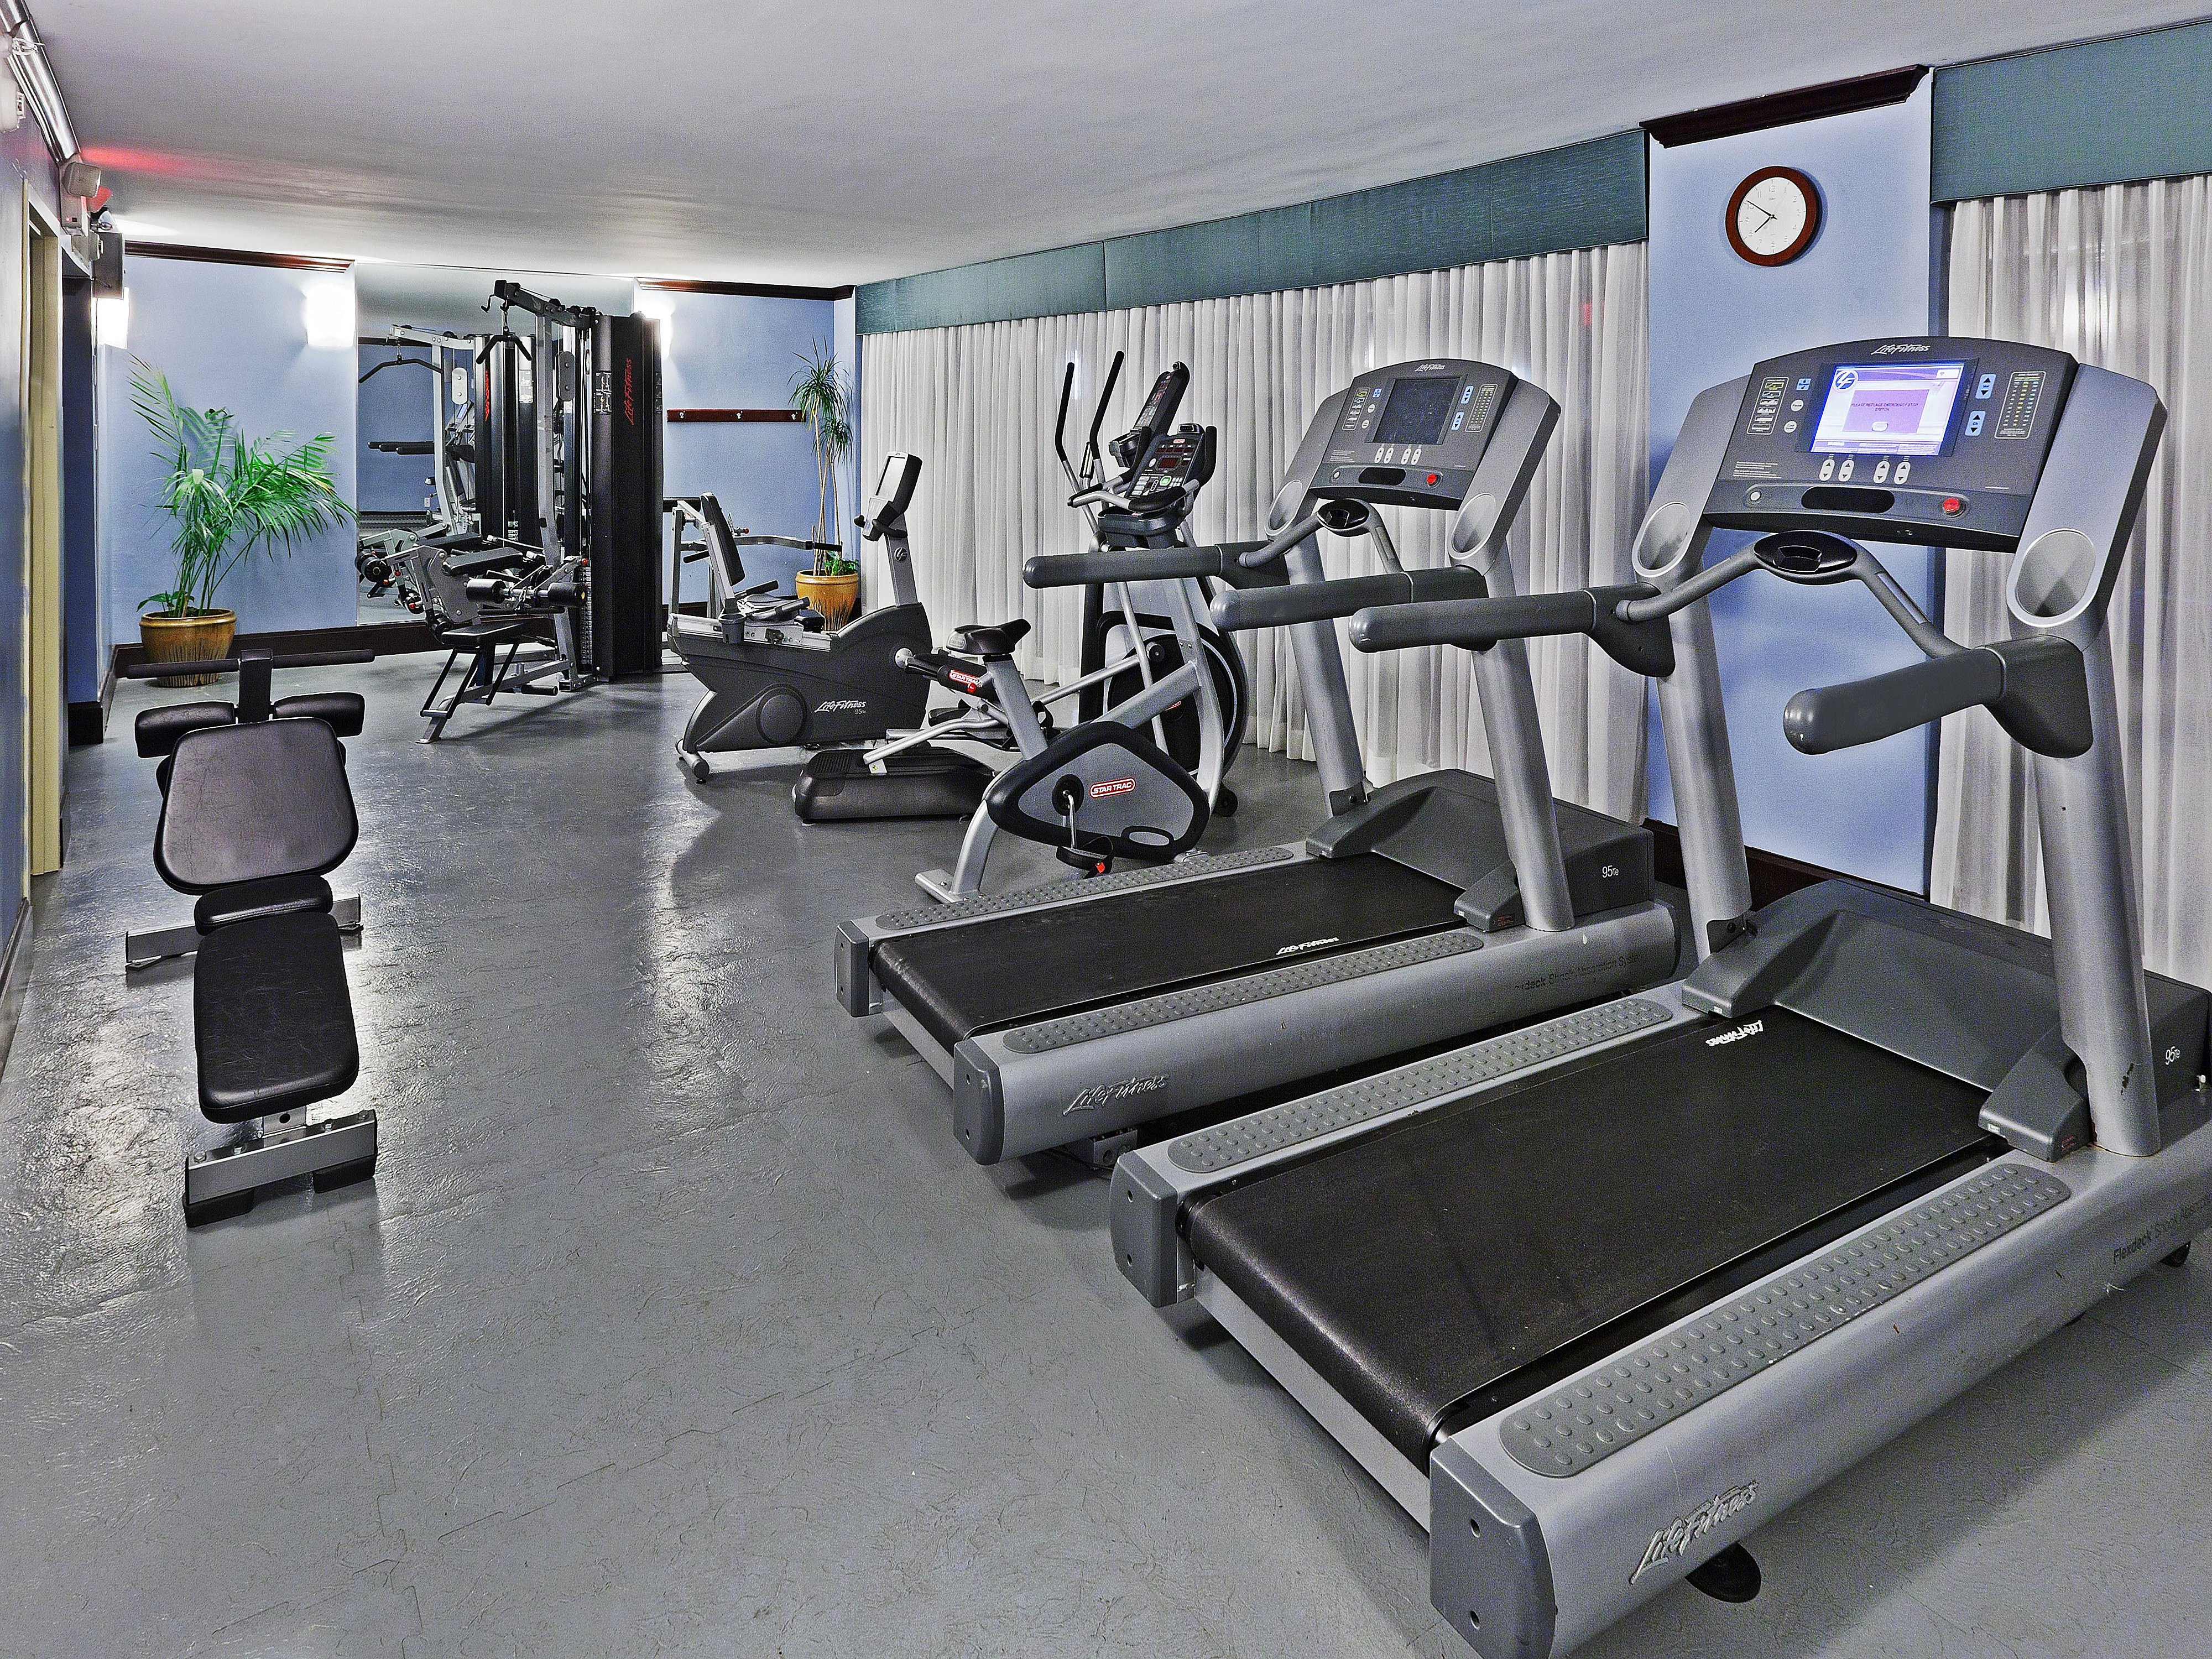 Crowne plaza dallas downtown health and fitness facilities